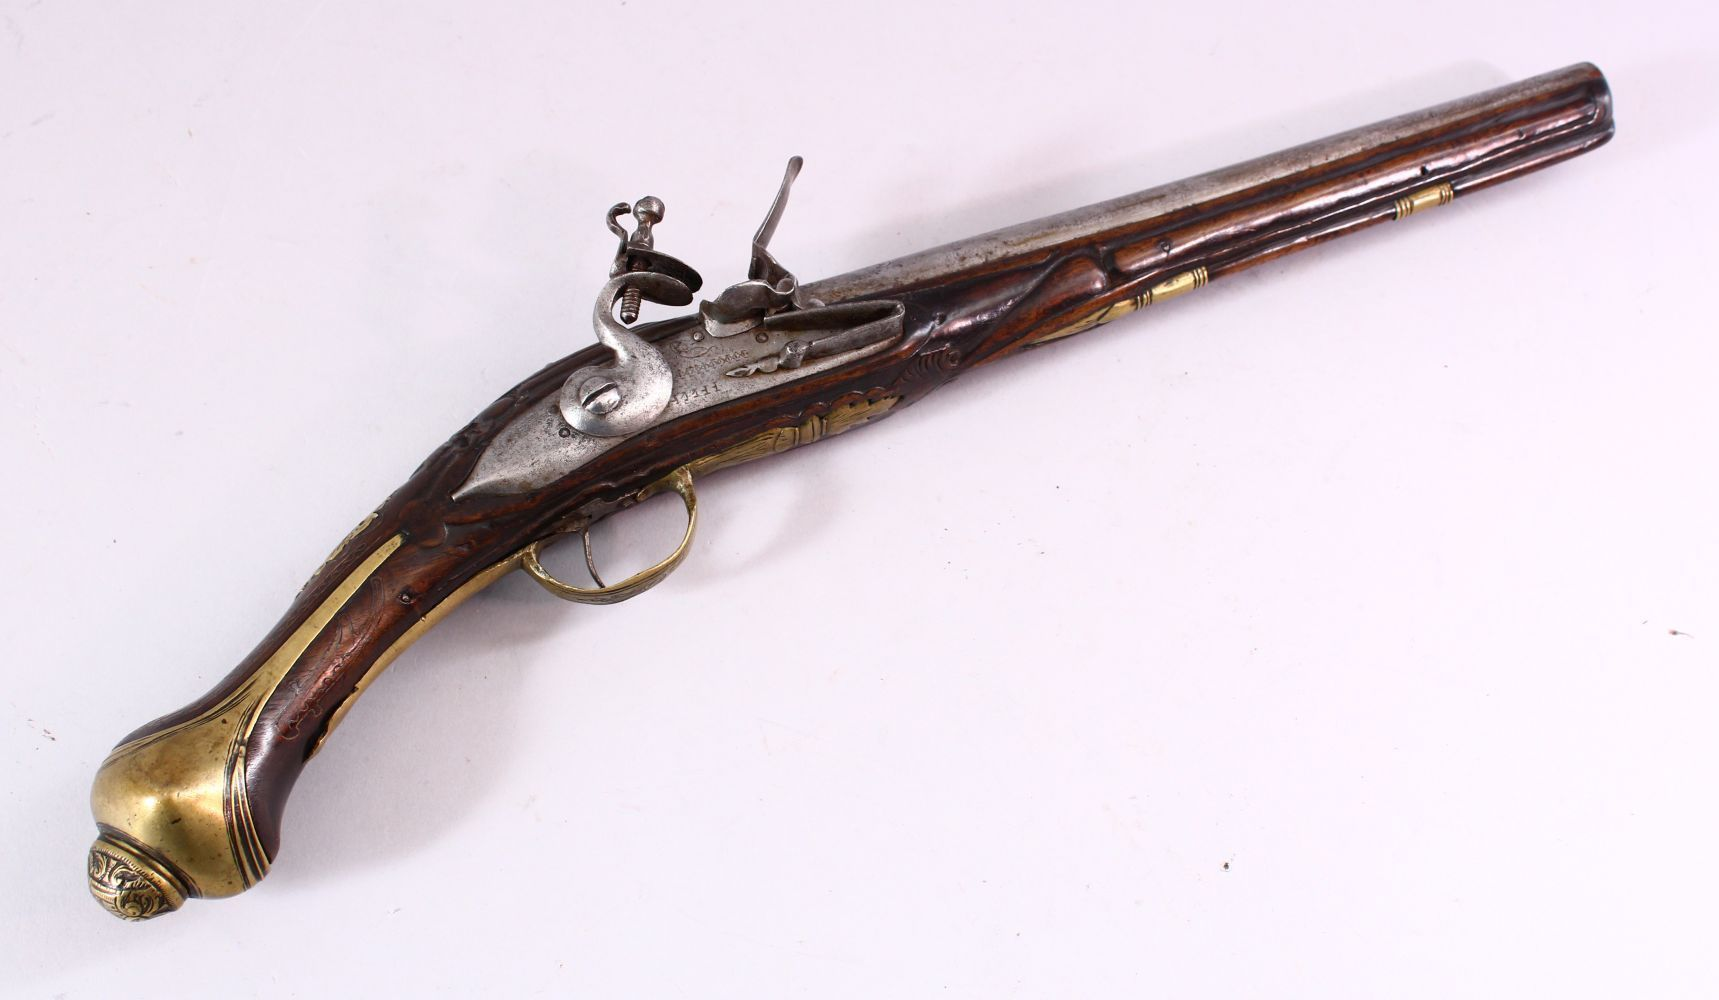 AN 18TH CENTURY ANGLO INDIAN FLINTLOCK PISTOL, engraved barrel, carved stock with wire inlaid